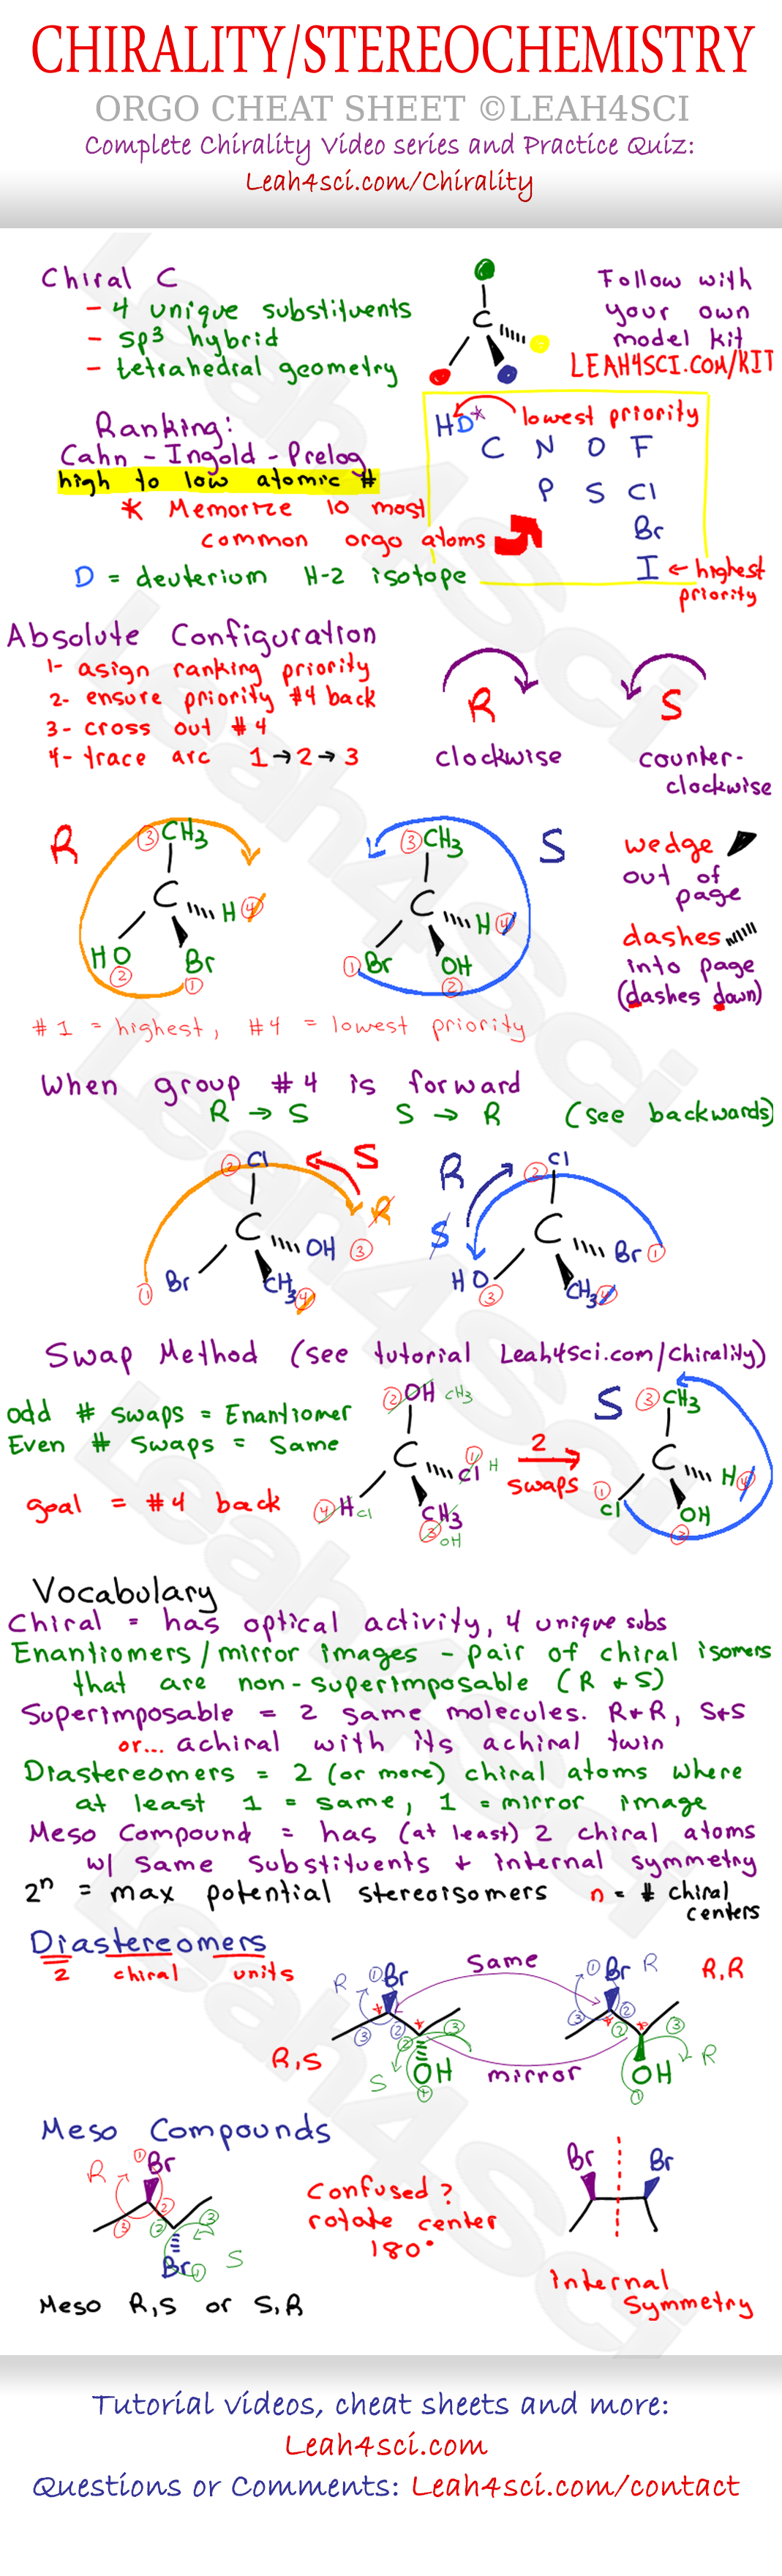 Chirality and Stereochemistry Cheat Sheet Study Guide -